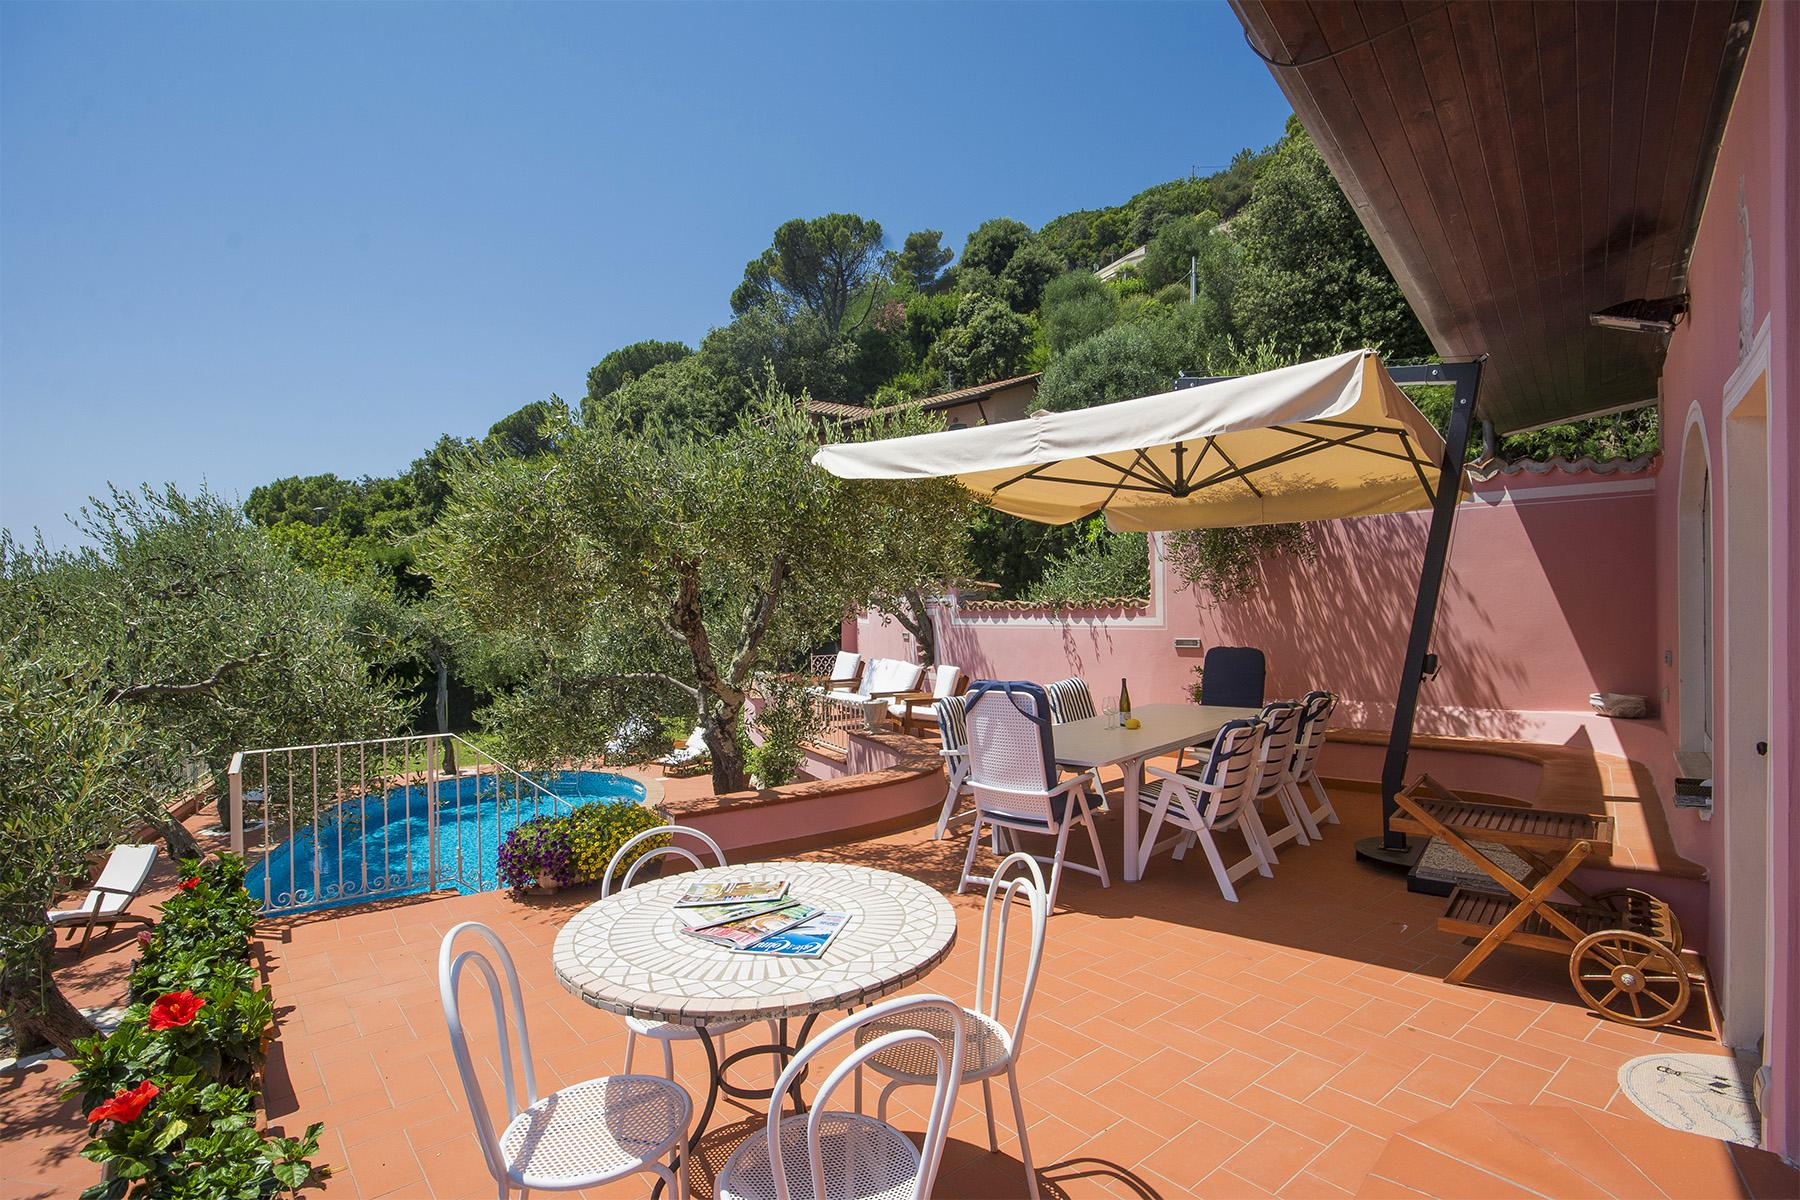 Charming luxury villa with swimming pool overlooking the Ligurian sea - 14